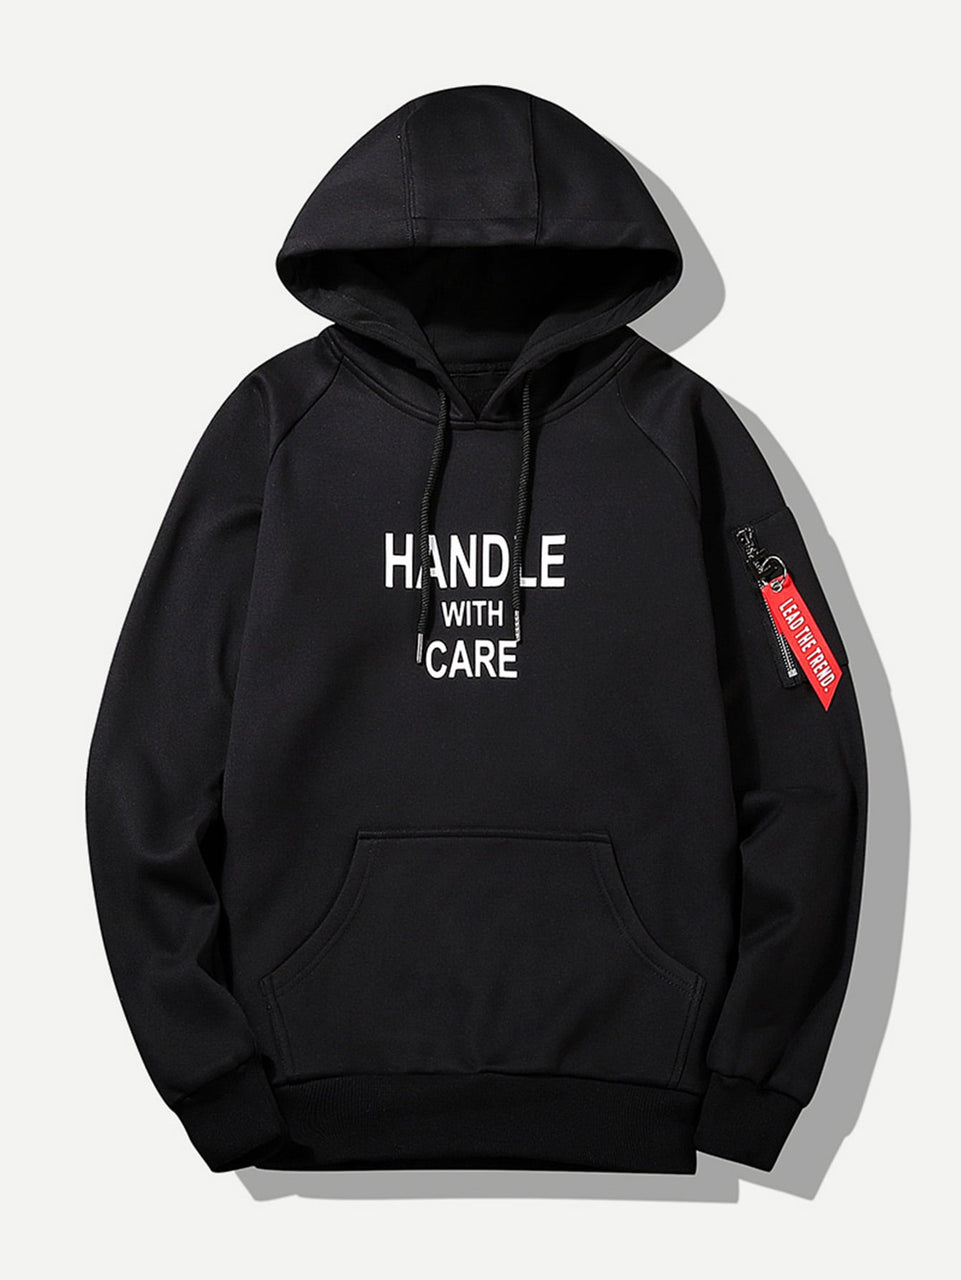 HANDLE WITH CARE - MIXT Apparel